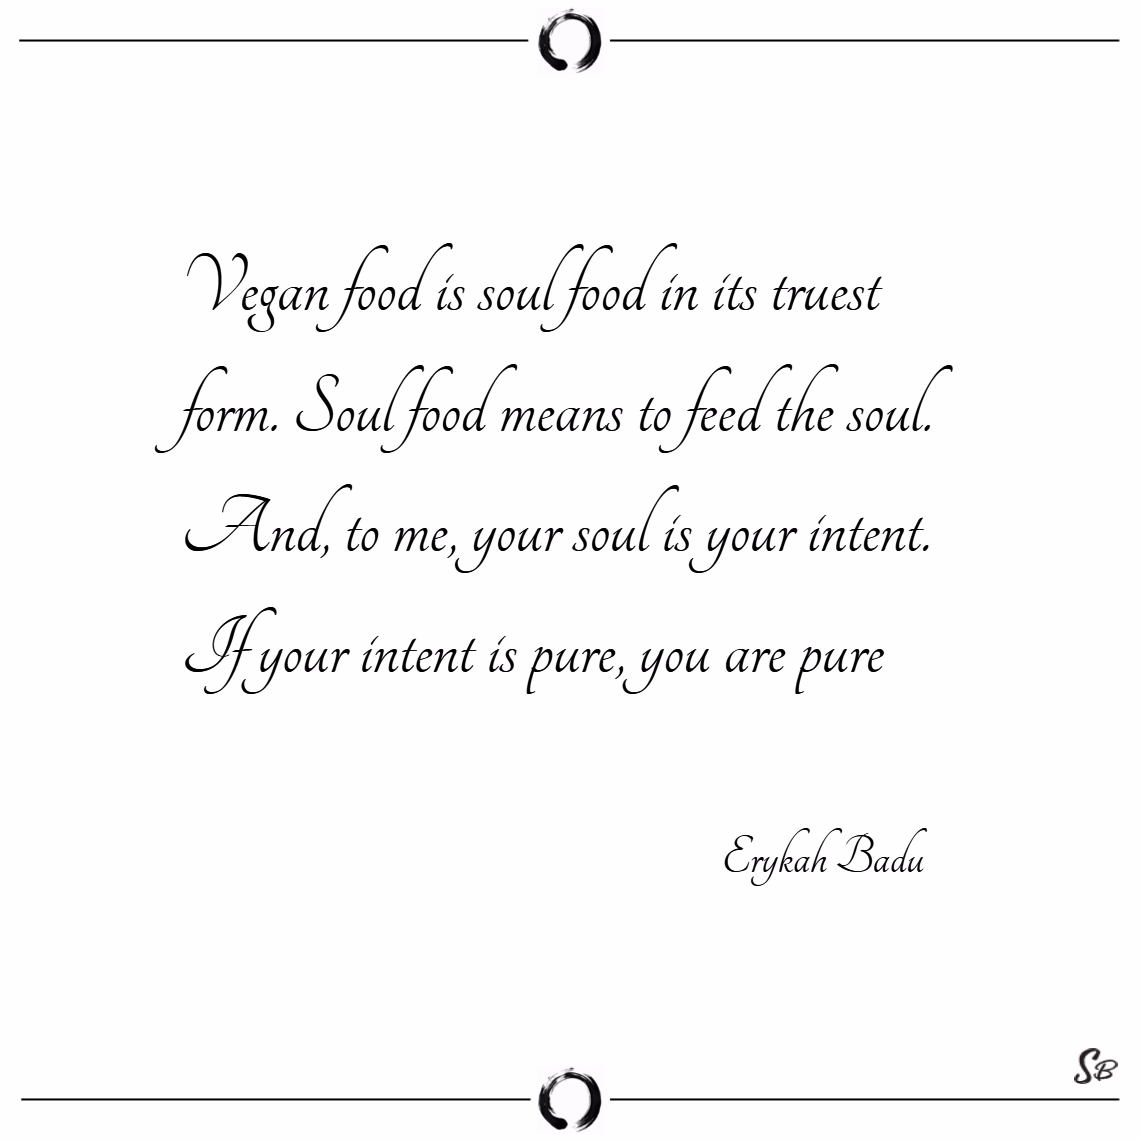 Vegan food is soul food in its truest form. soul food means to feed the soul. and, to me, your soul is your intent. if your intent is pure, you are pure. – erykah badu